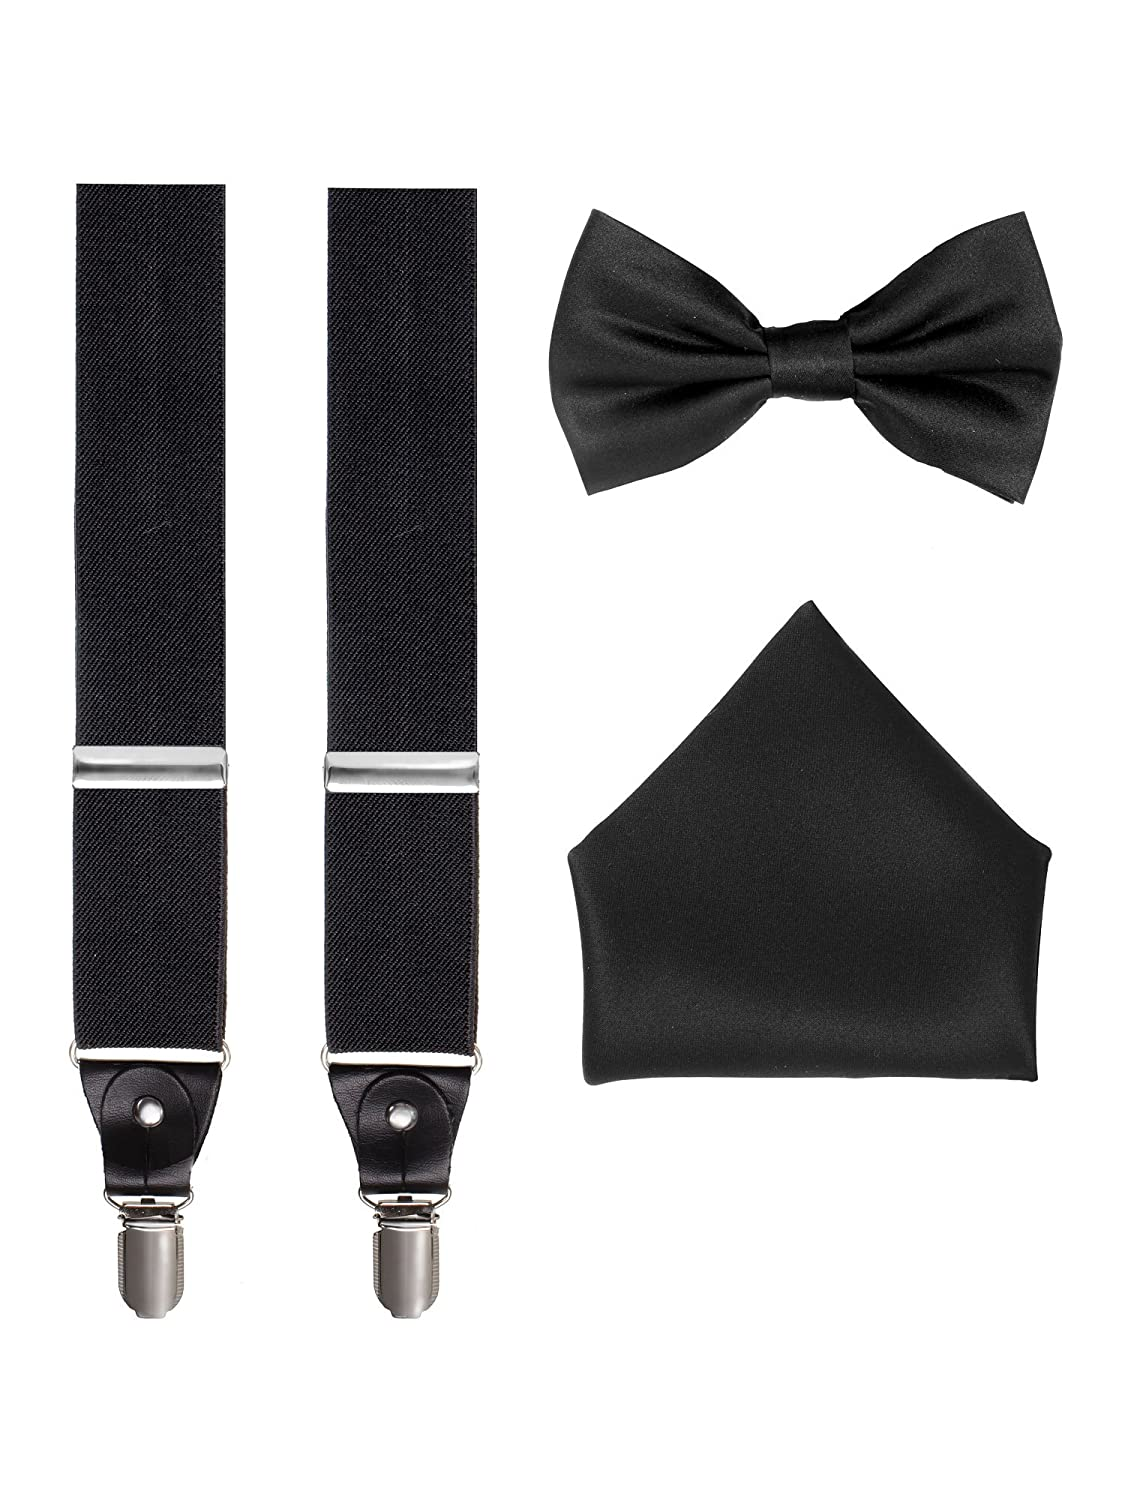 8224e6b71235 ... Cutting out the hassle of having to shop around to complete a look,  this handsome men\'s accessory set features a classic pair of Y-back  suspenders or ...